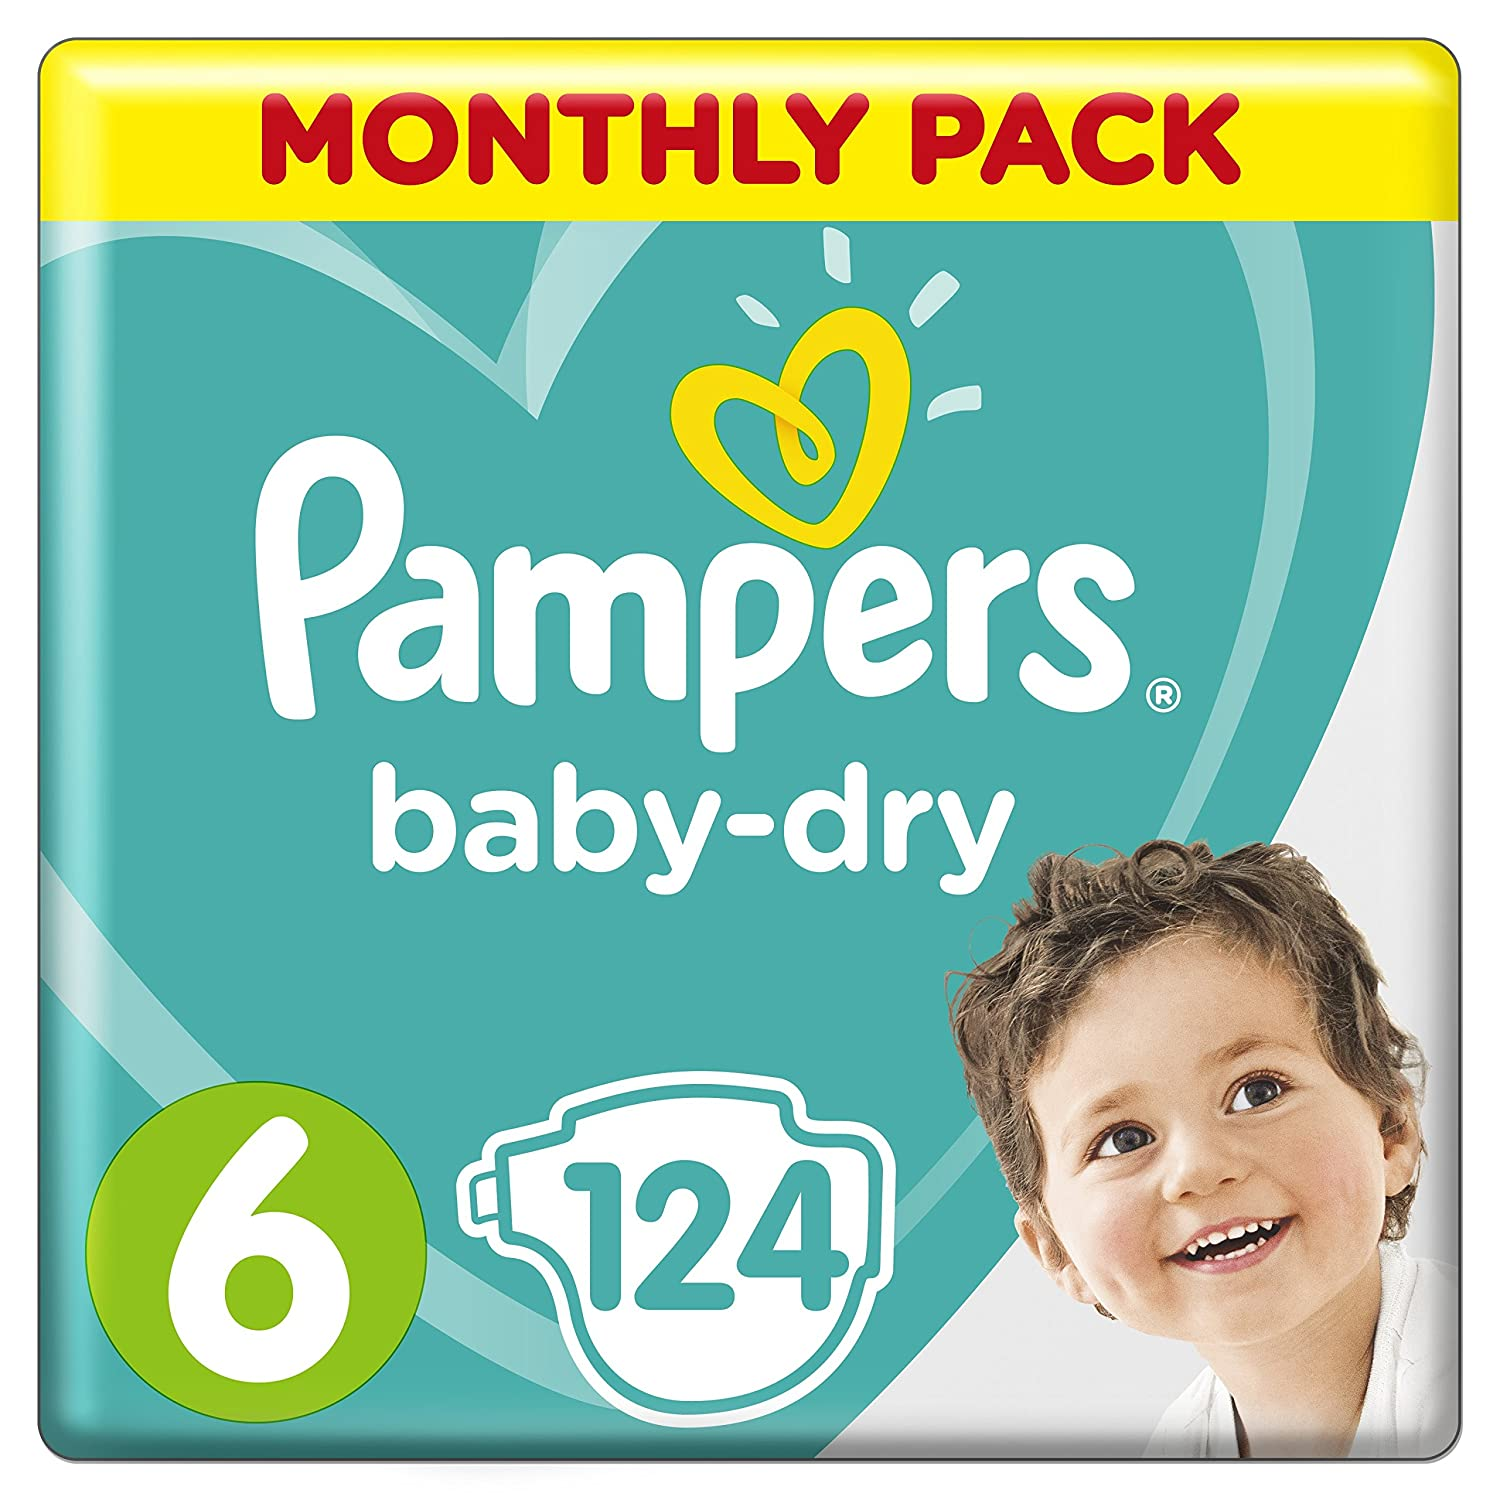 Pampers - Baby Dry - Diapers Size 4 (9-14/8-16 kg) - 1 Month Pack, 174 diapers Procter & Gamble 81398458